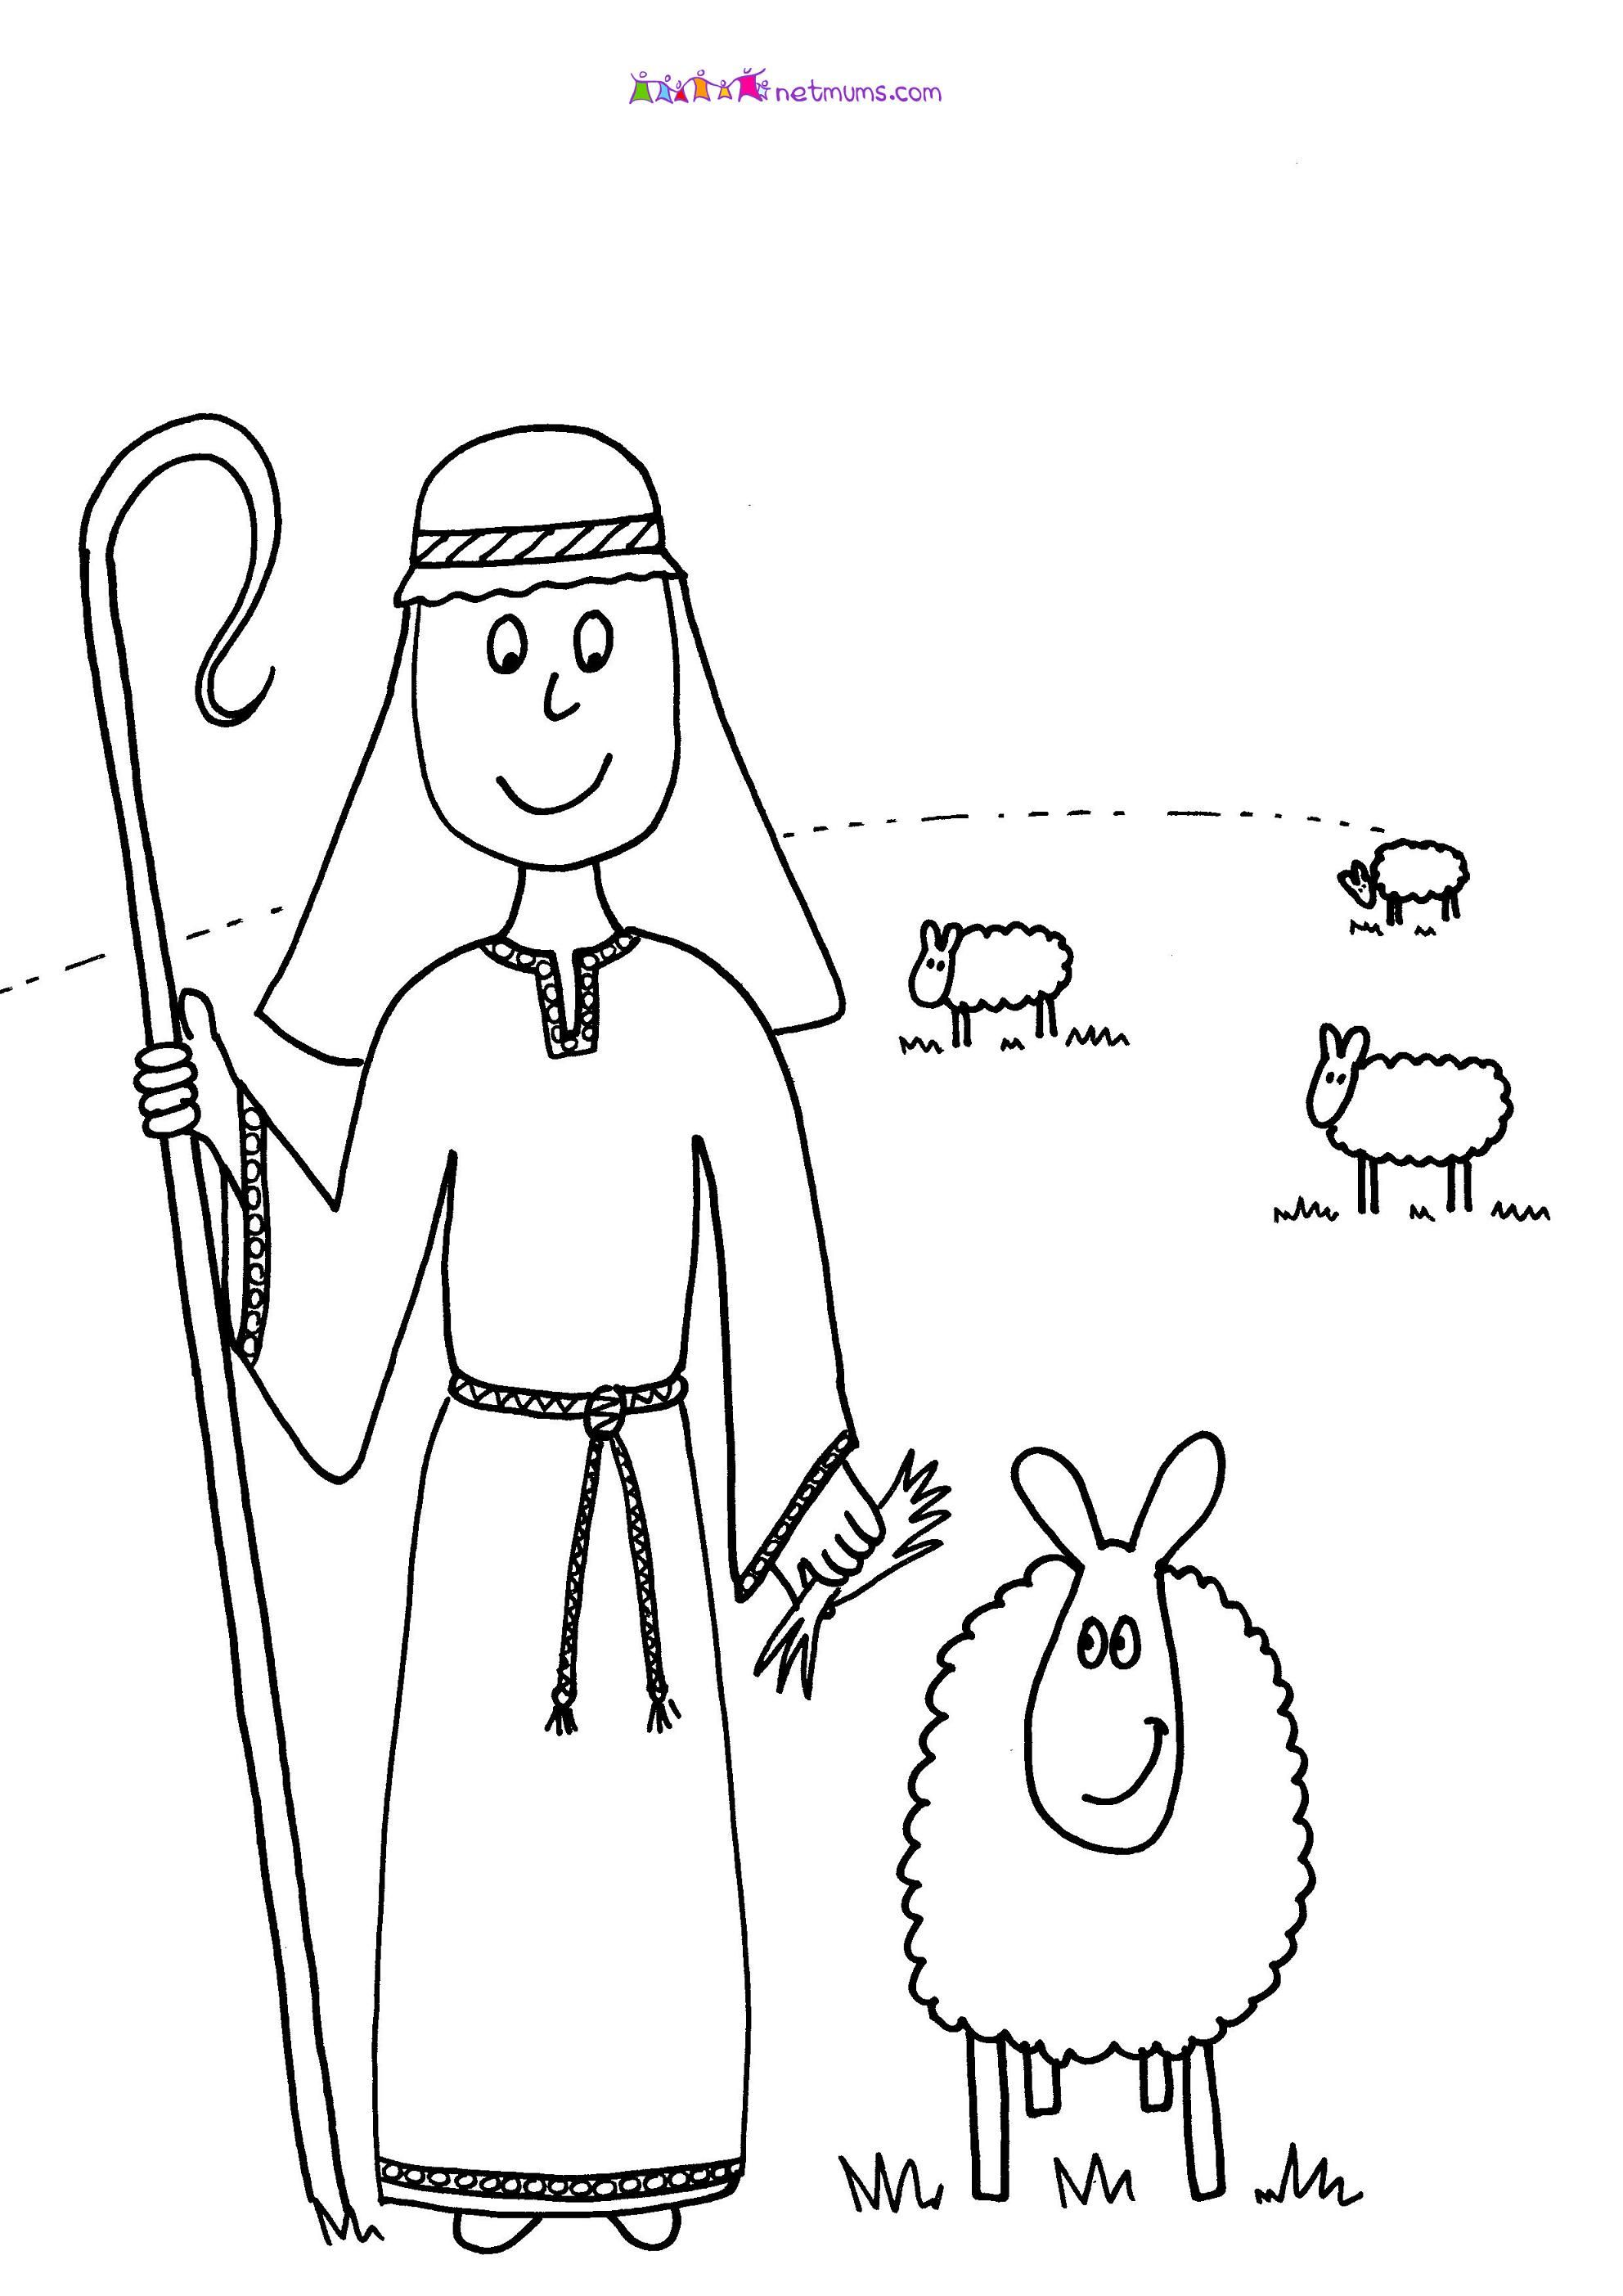 Creative Play Bible Coloring Pages The Good Shepherd The Lost